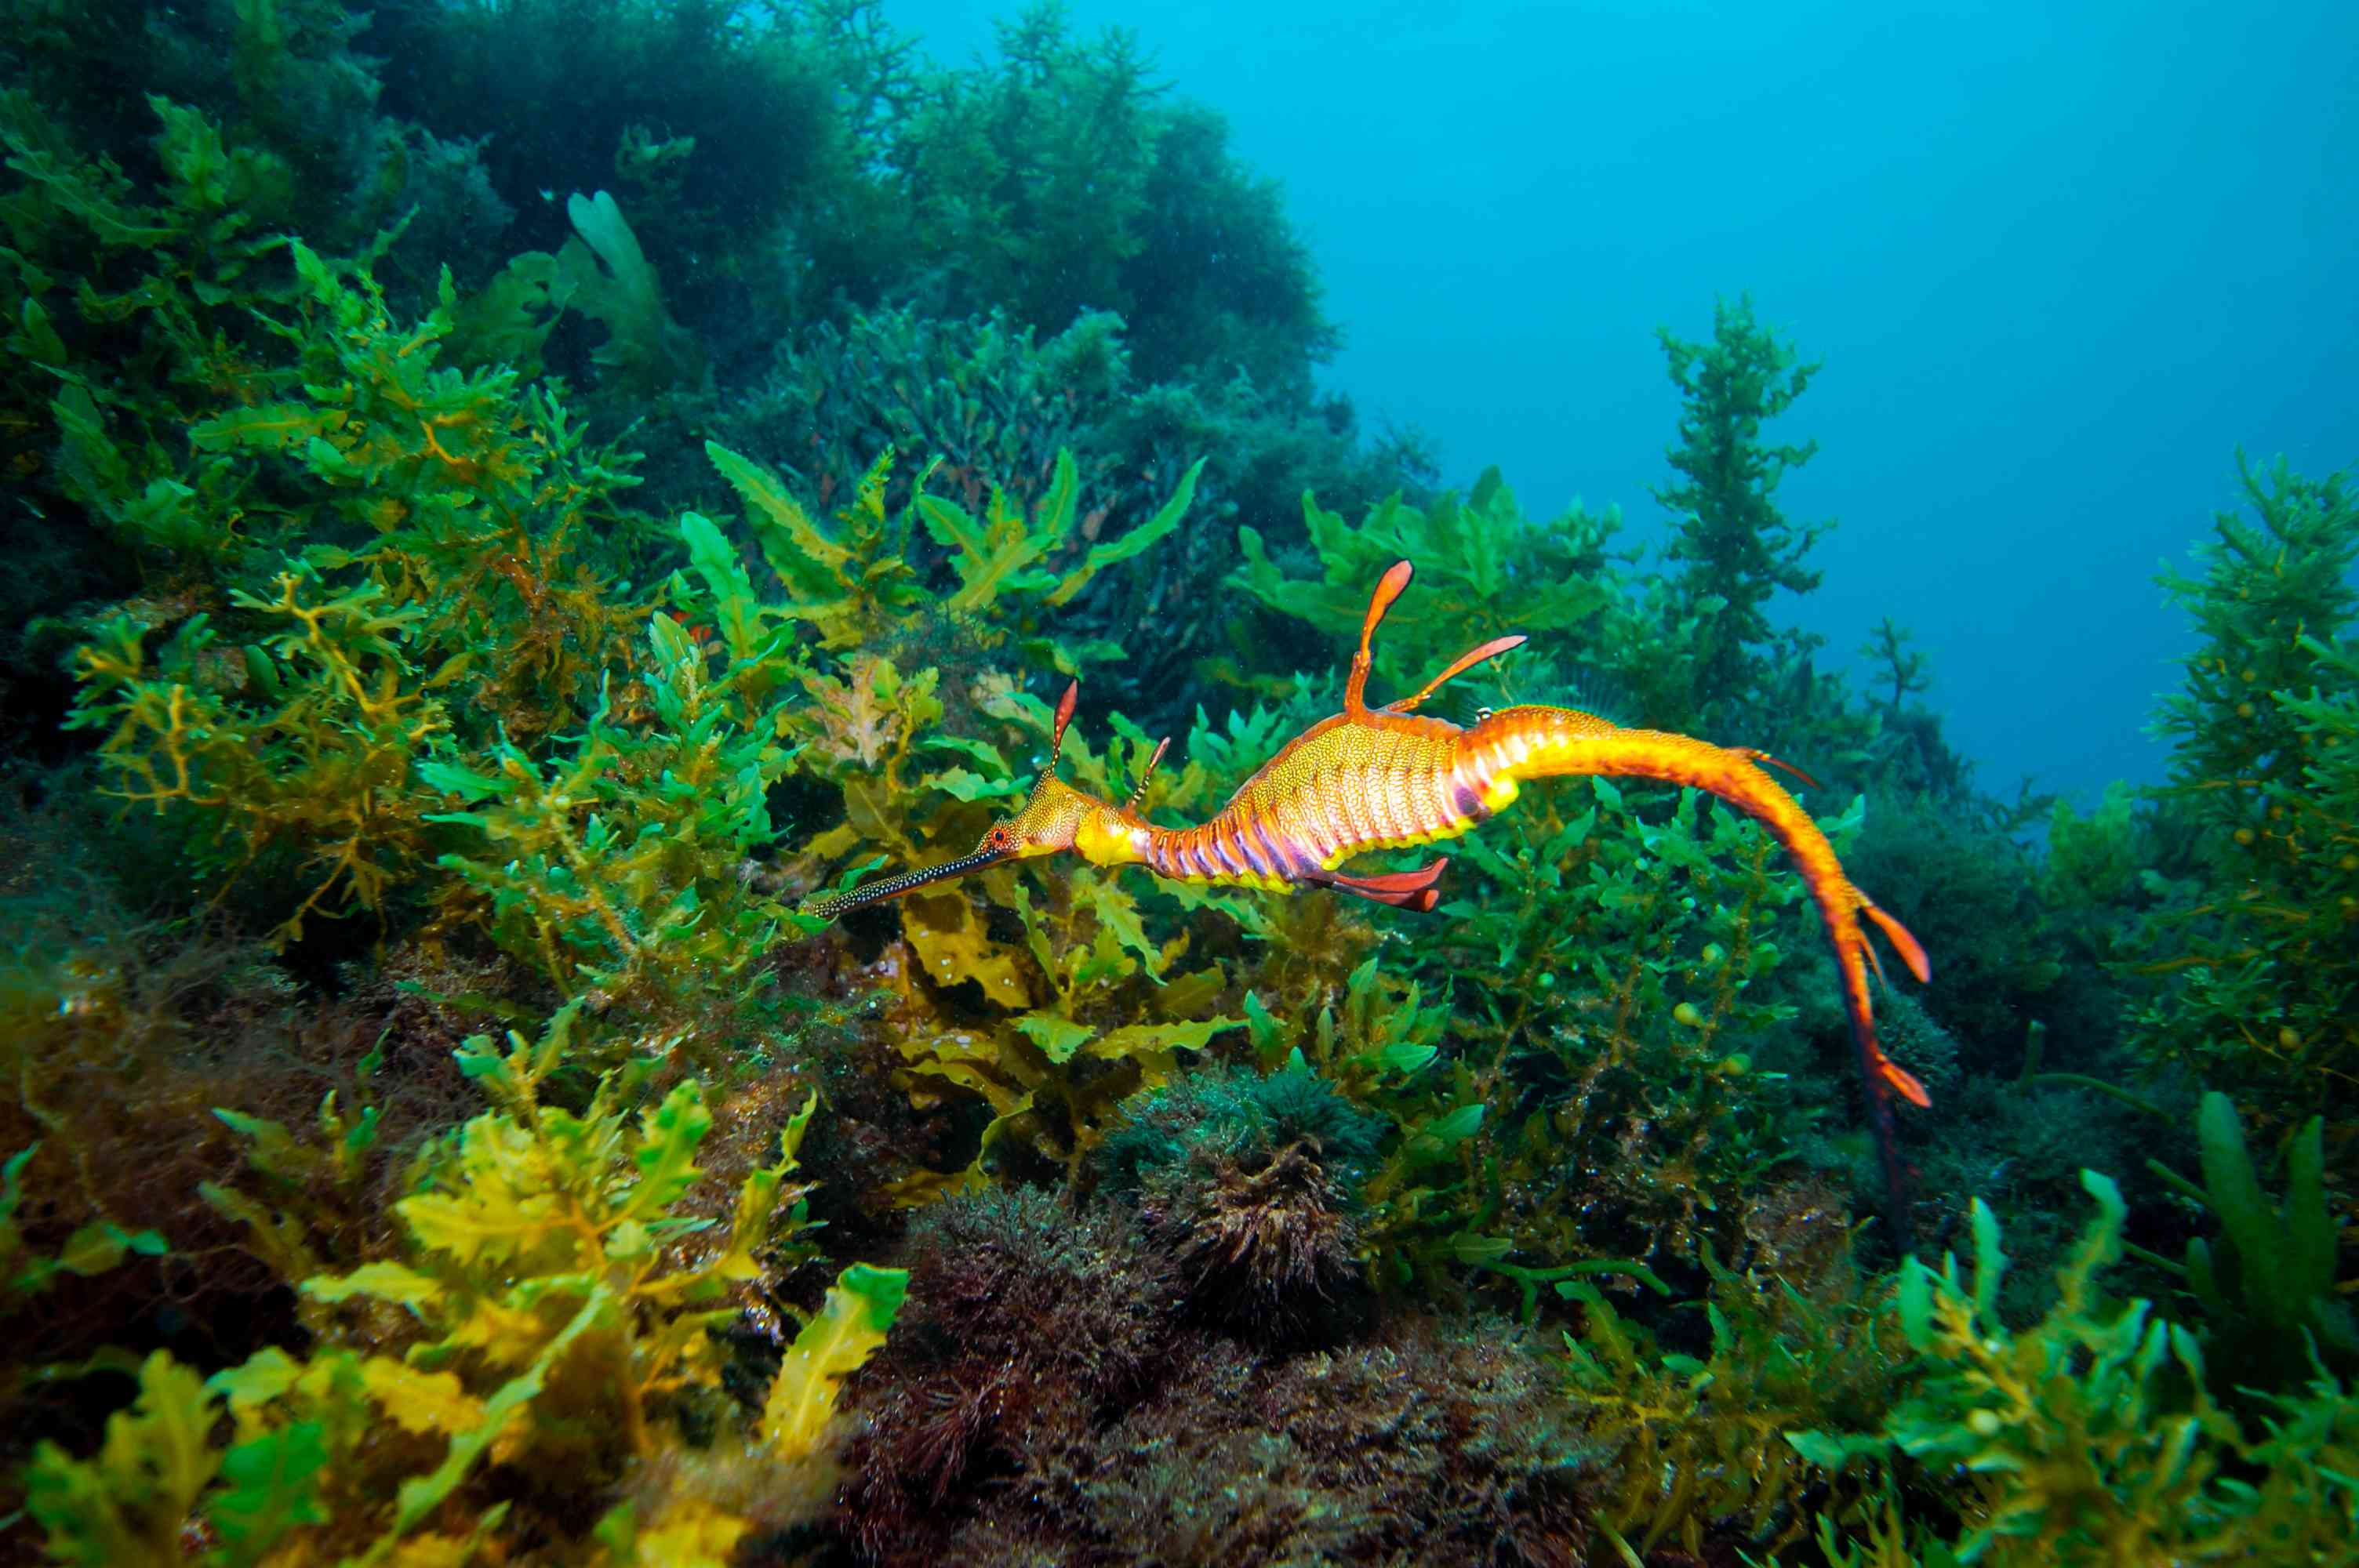 Yellow and orange weedy sea dragon nibbling on a green underwater plant